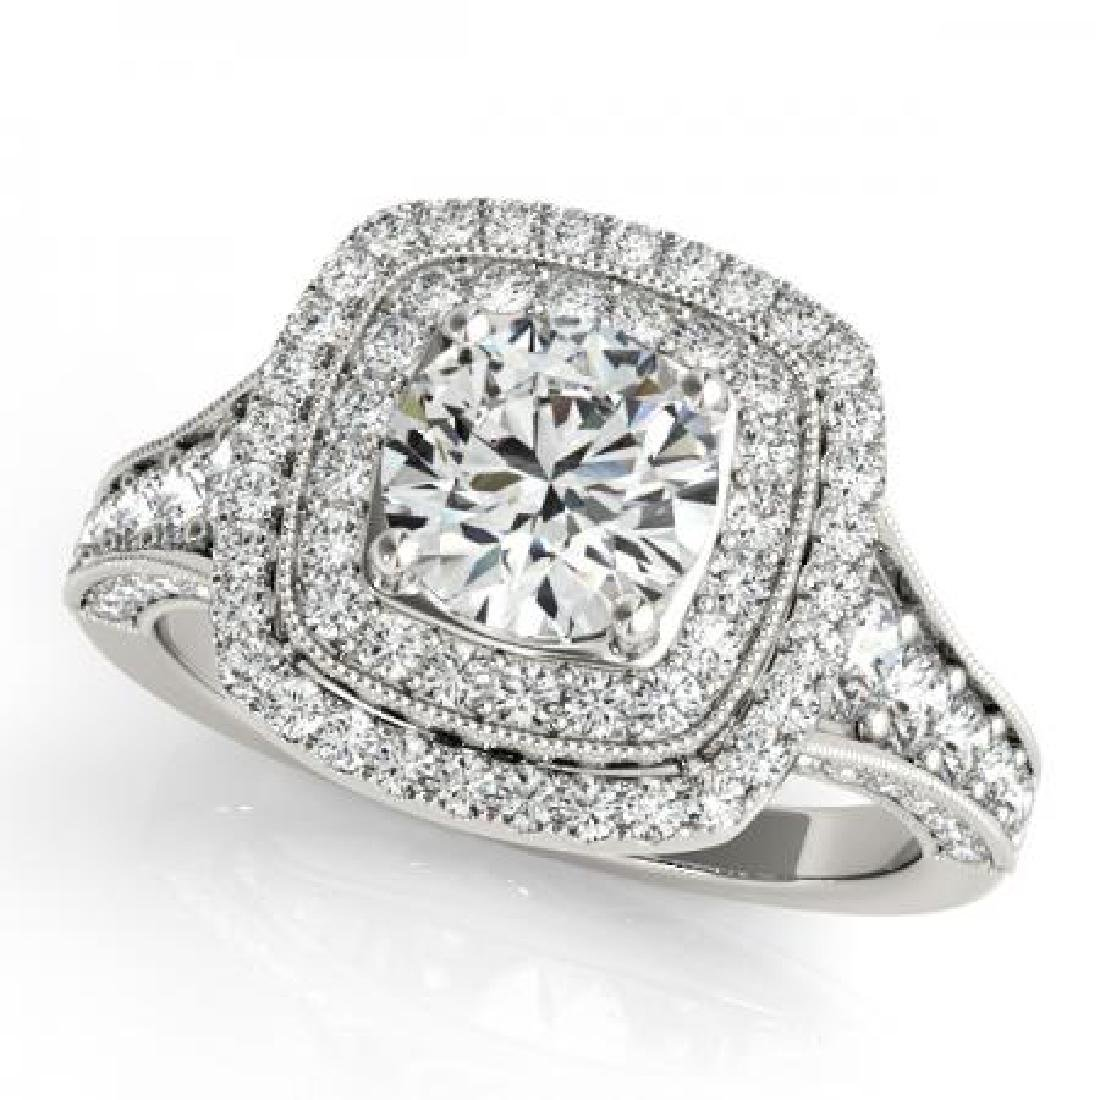 CERTIFIED PLATINUM 1.53 CT G-H/VS-SI1 DIAMOND HALO ENGA